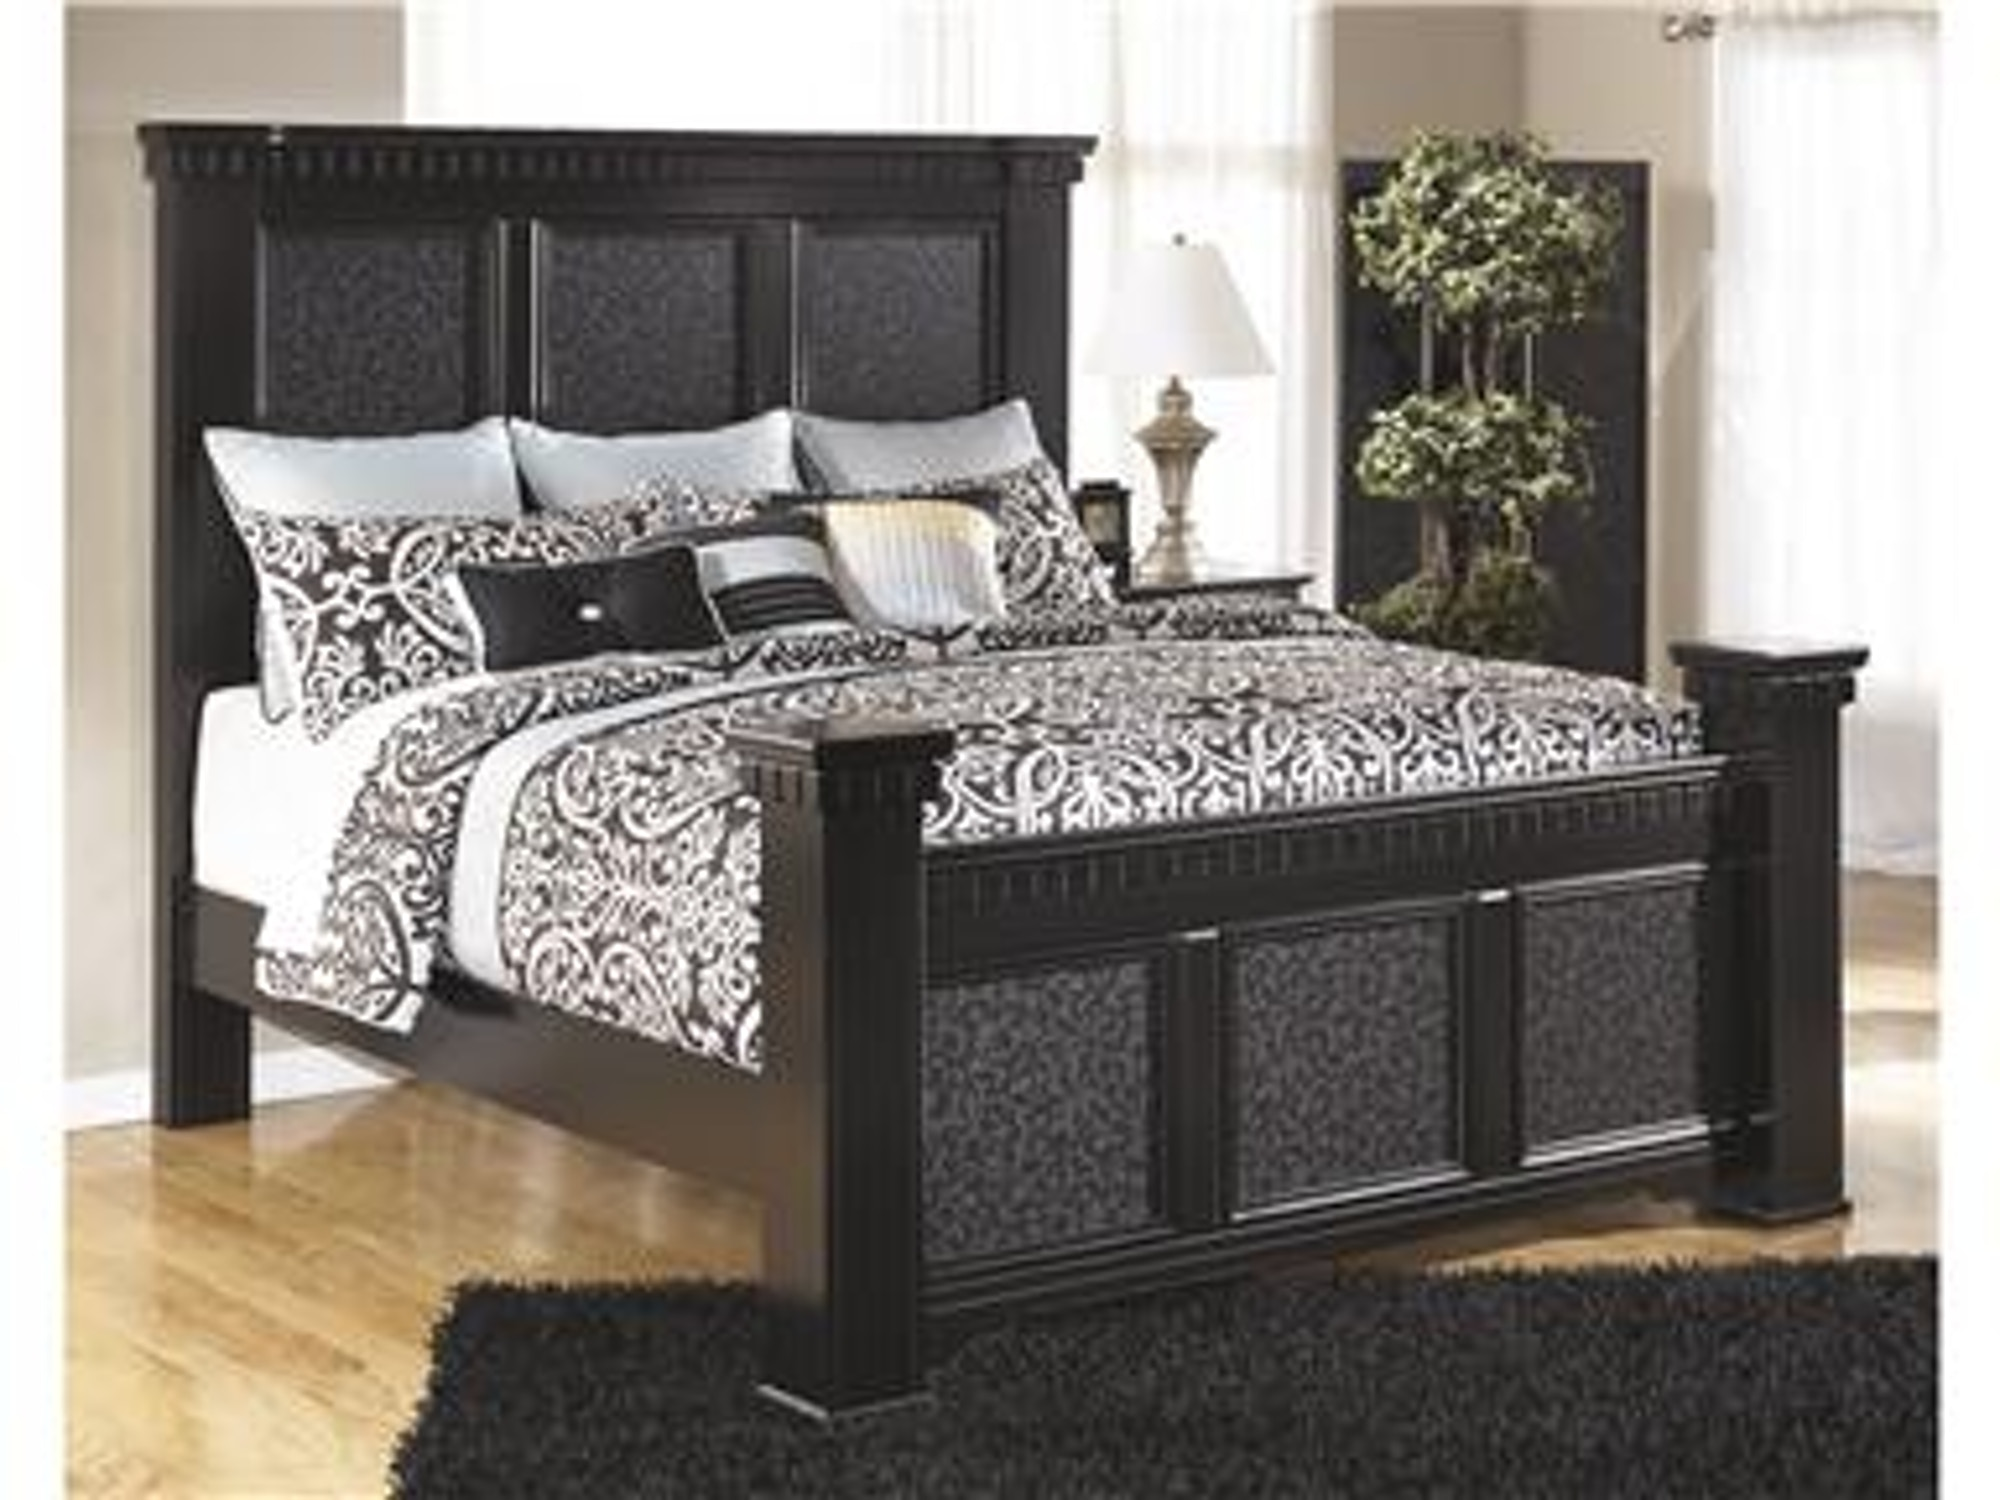 Cavallino Bed - King 303385